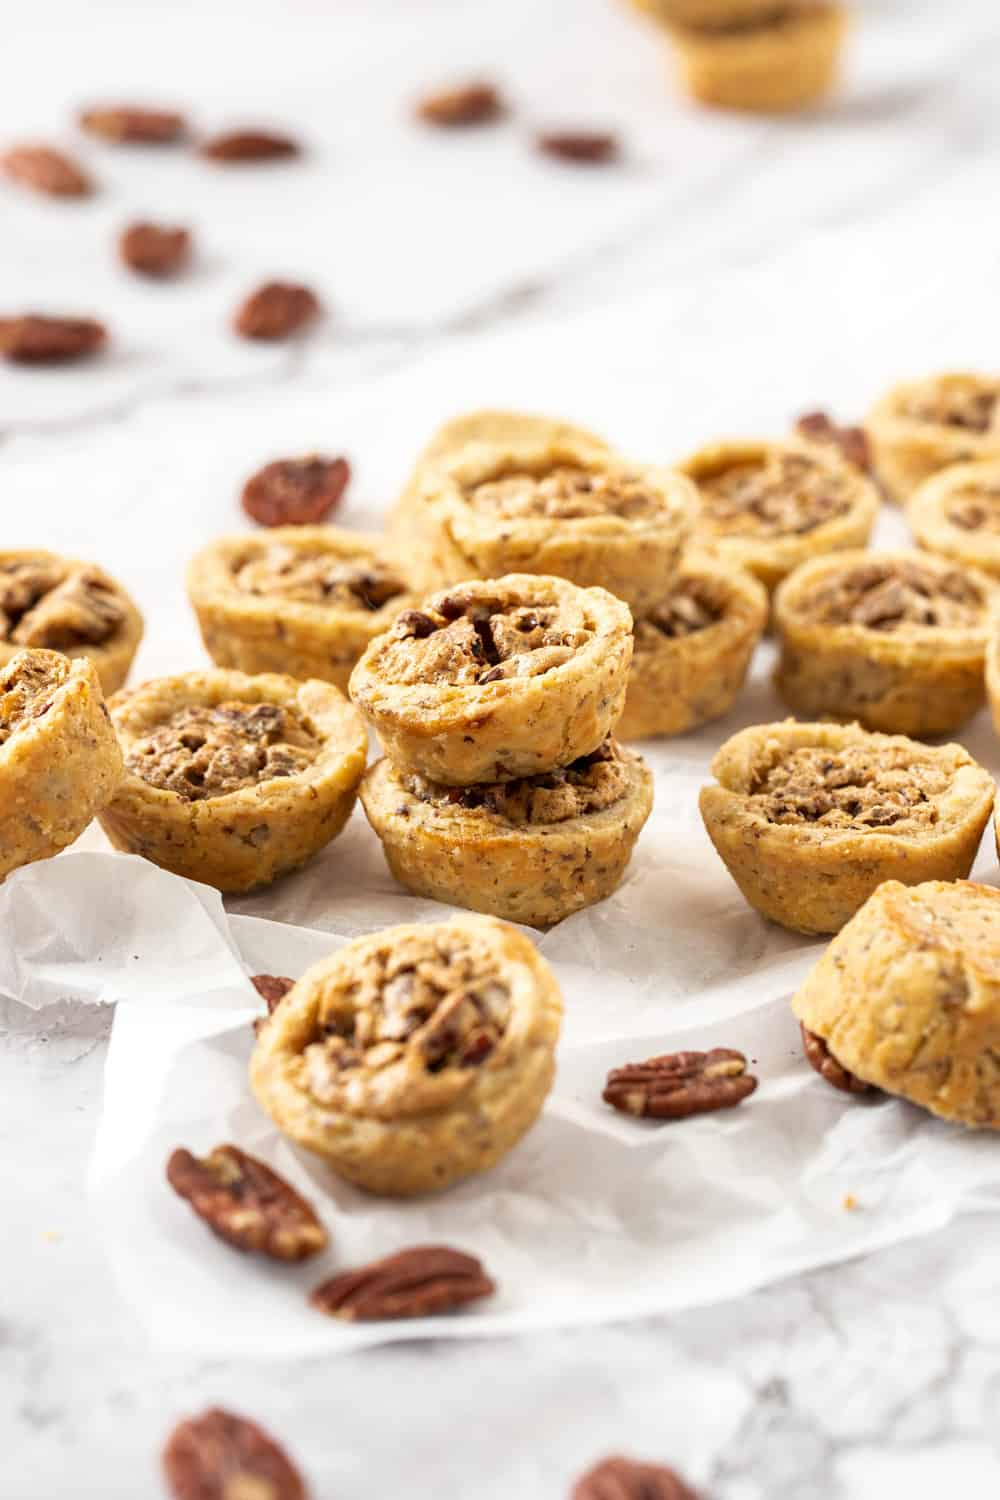 A pile of pecan tassies on a sheet of baking paper